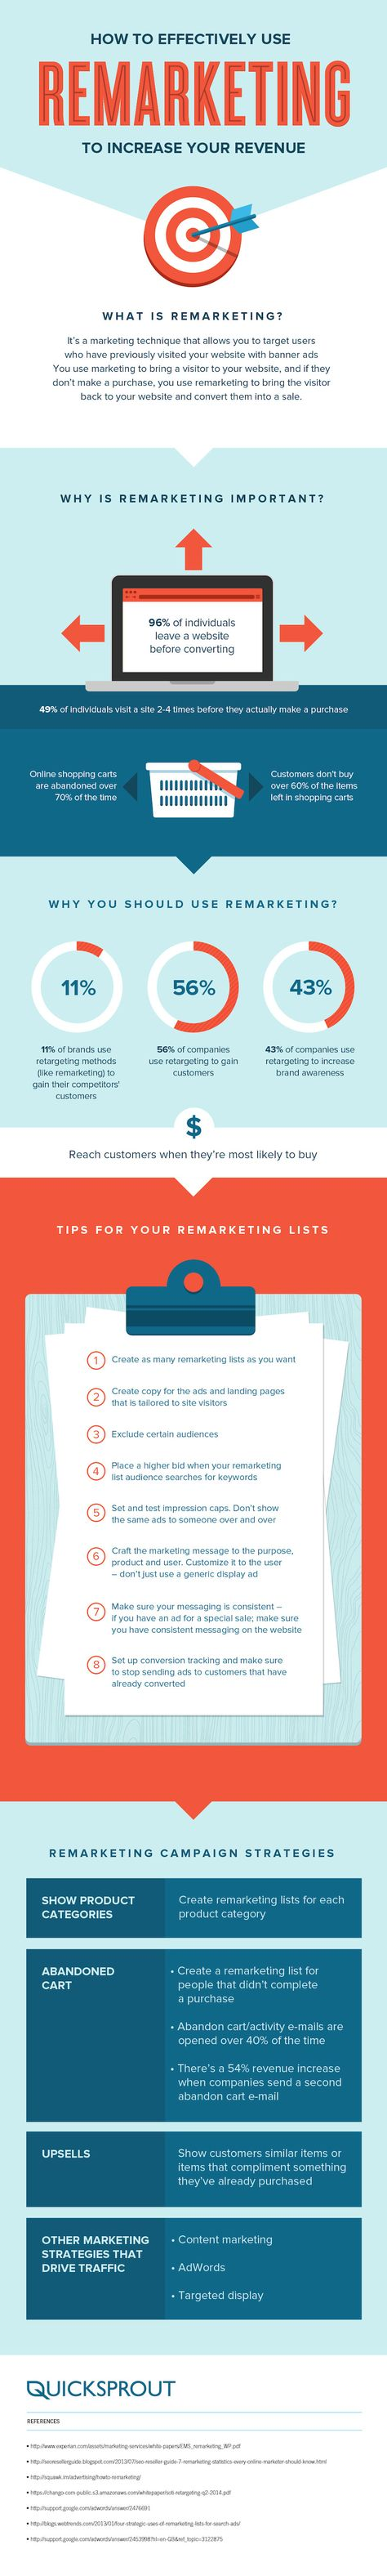 Remarketing Made Simple: A Step-by-Step Guide